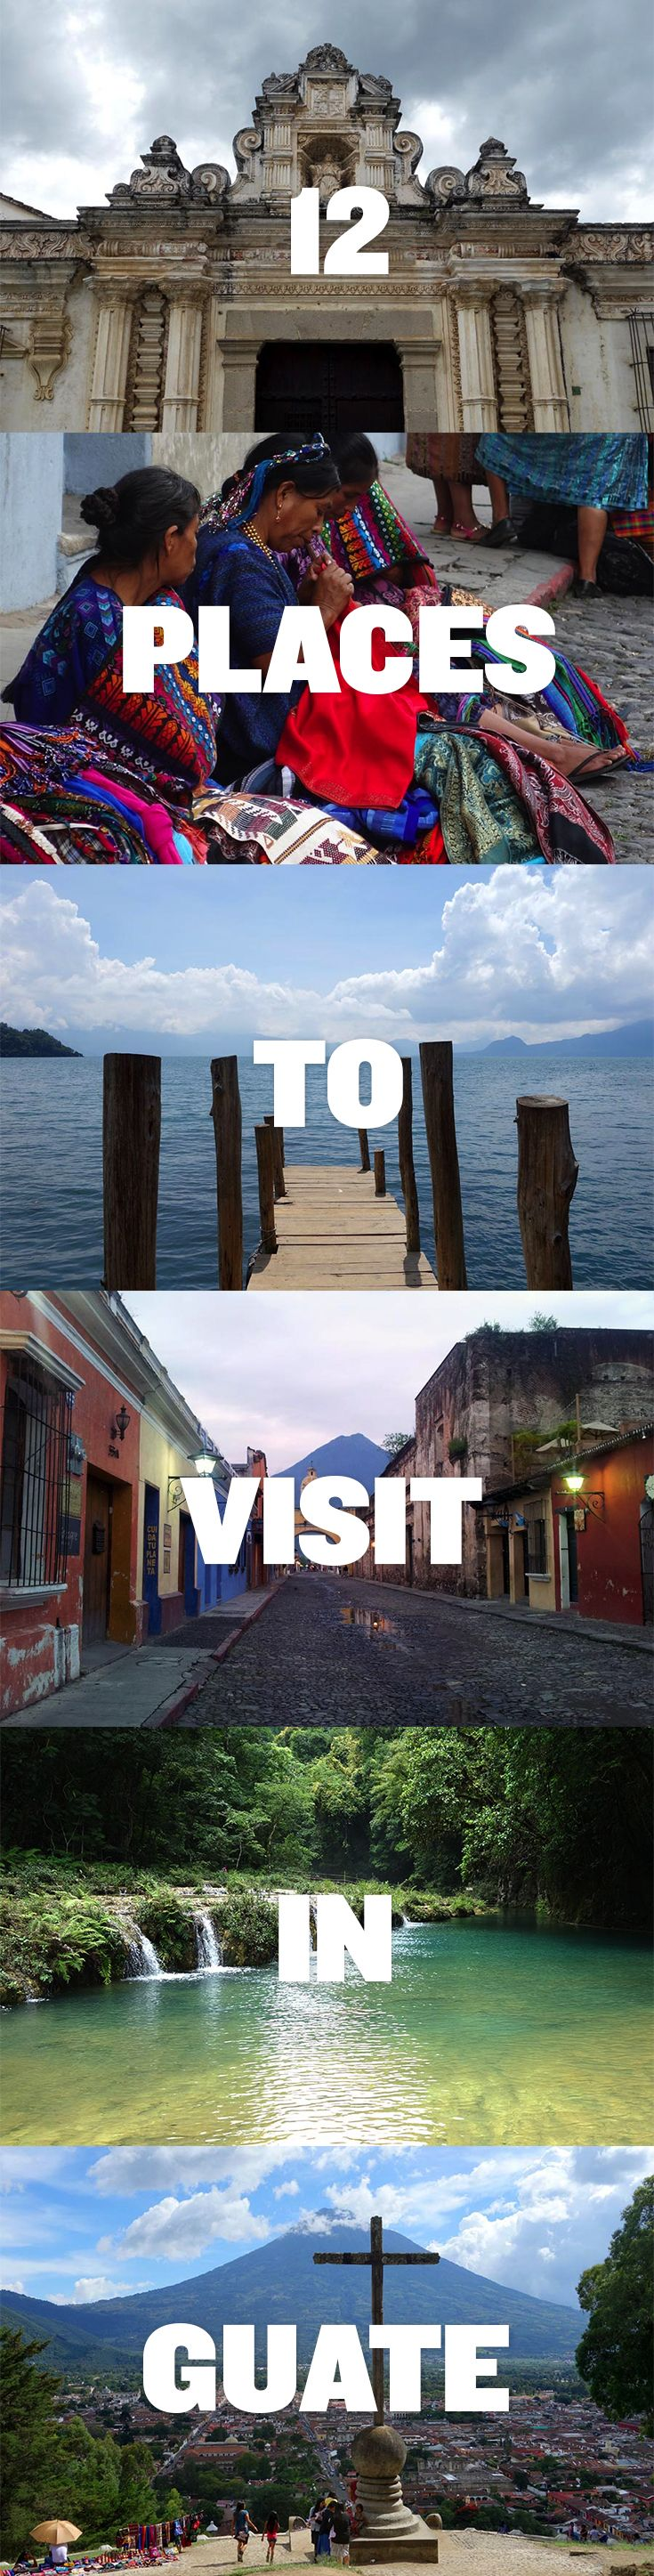 Heading to Guatemala? Check out these 12 Best Places to Visit in Guatemala ...